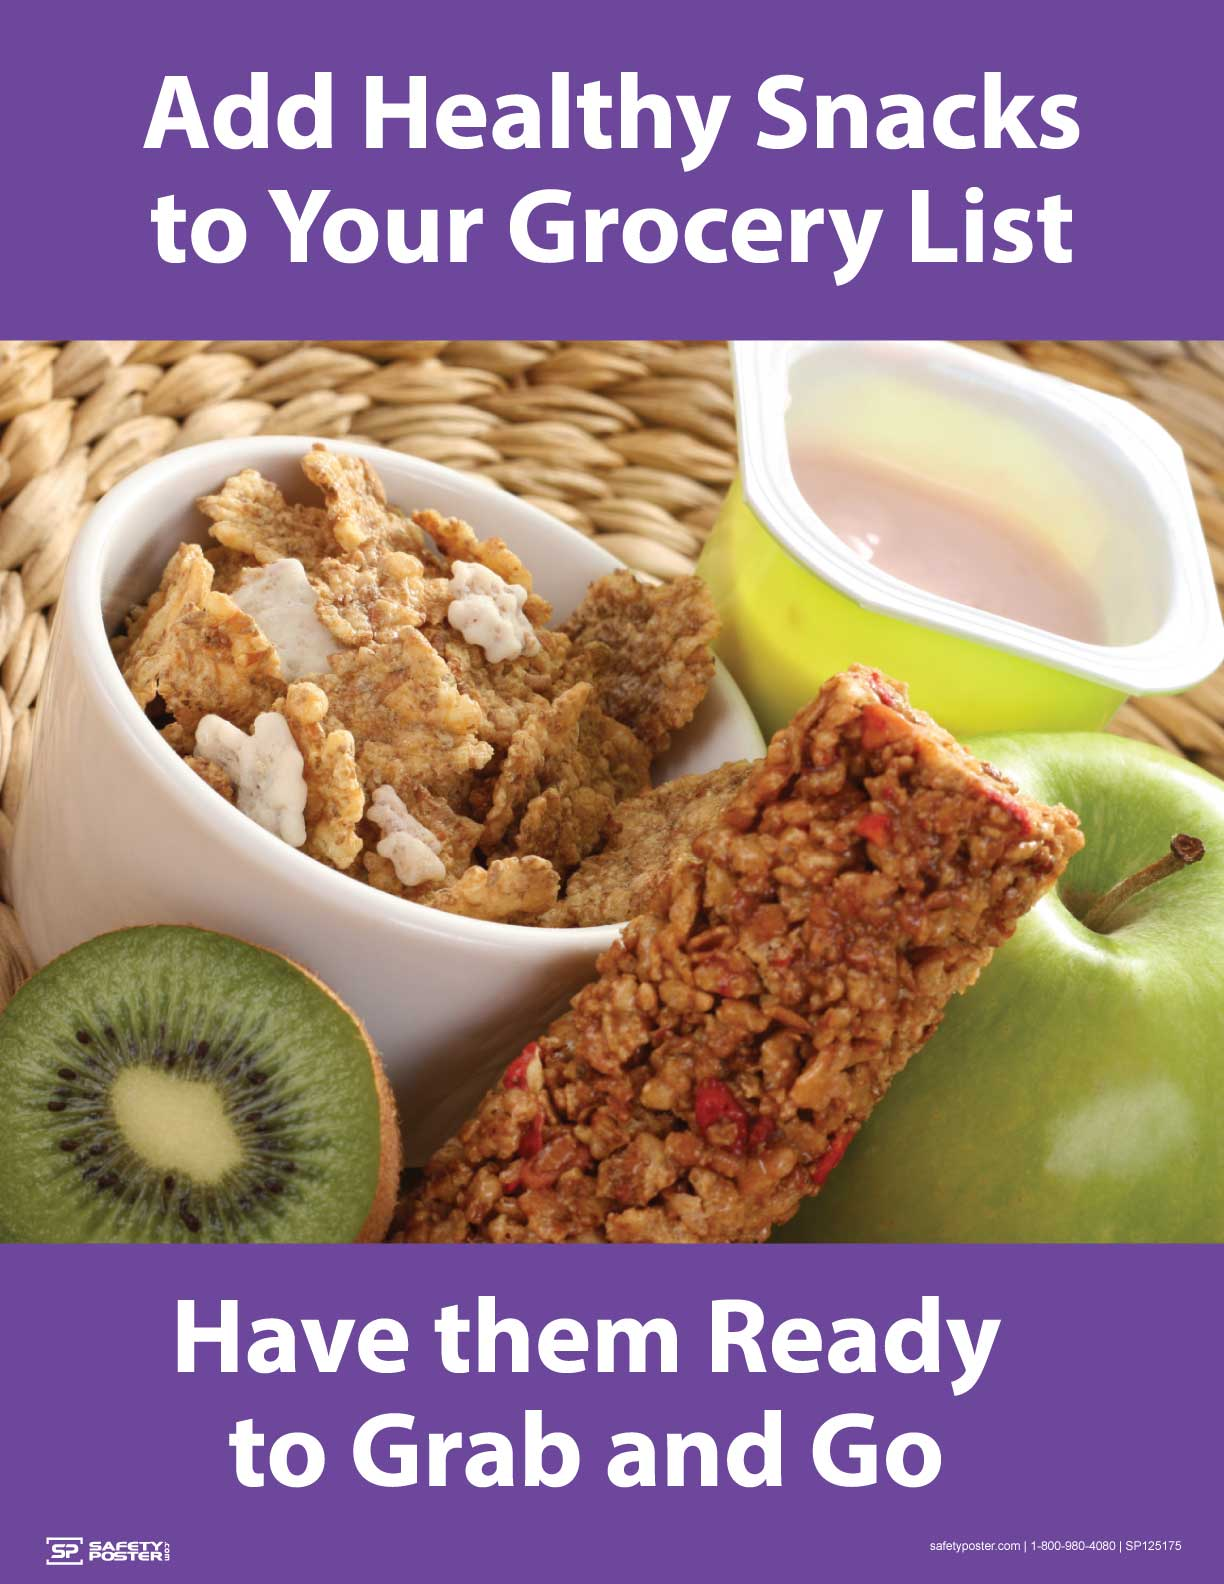 Add Healthy Snacks to Your Grocery List - Safety Poster